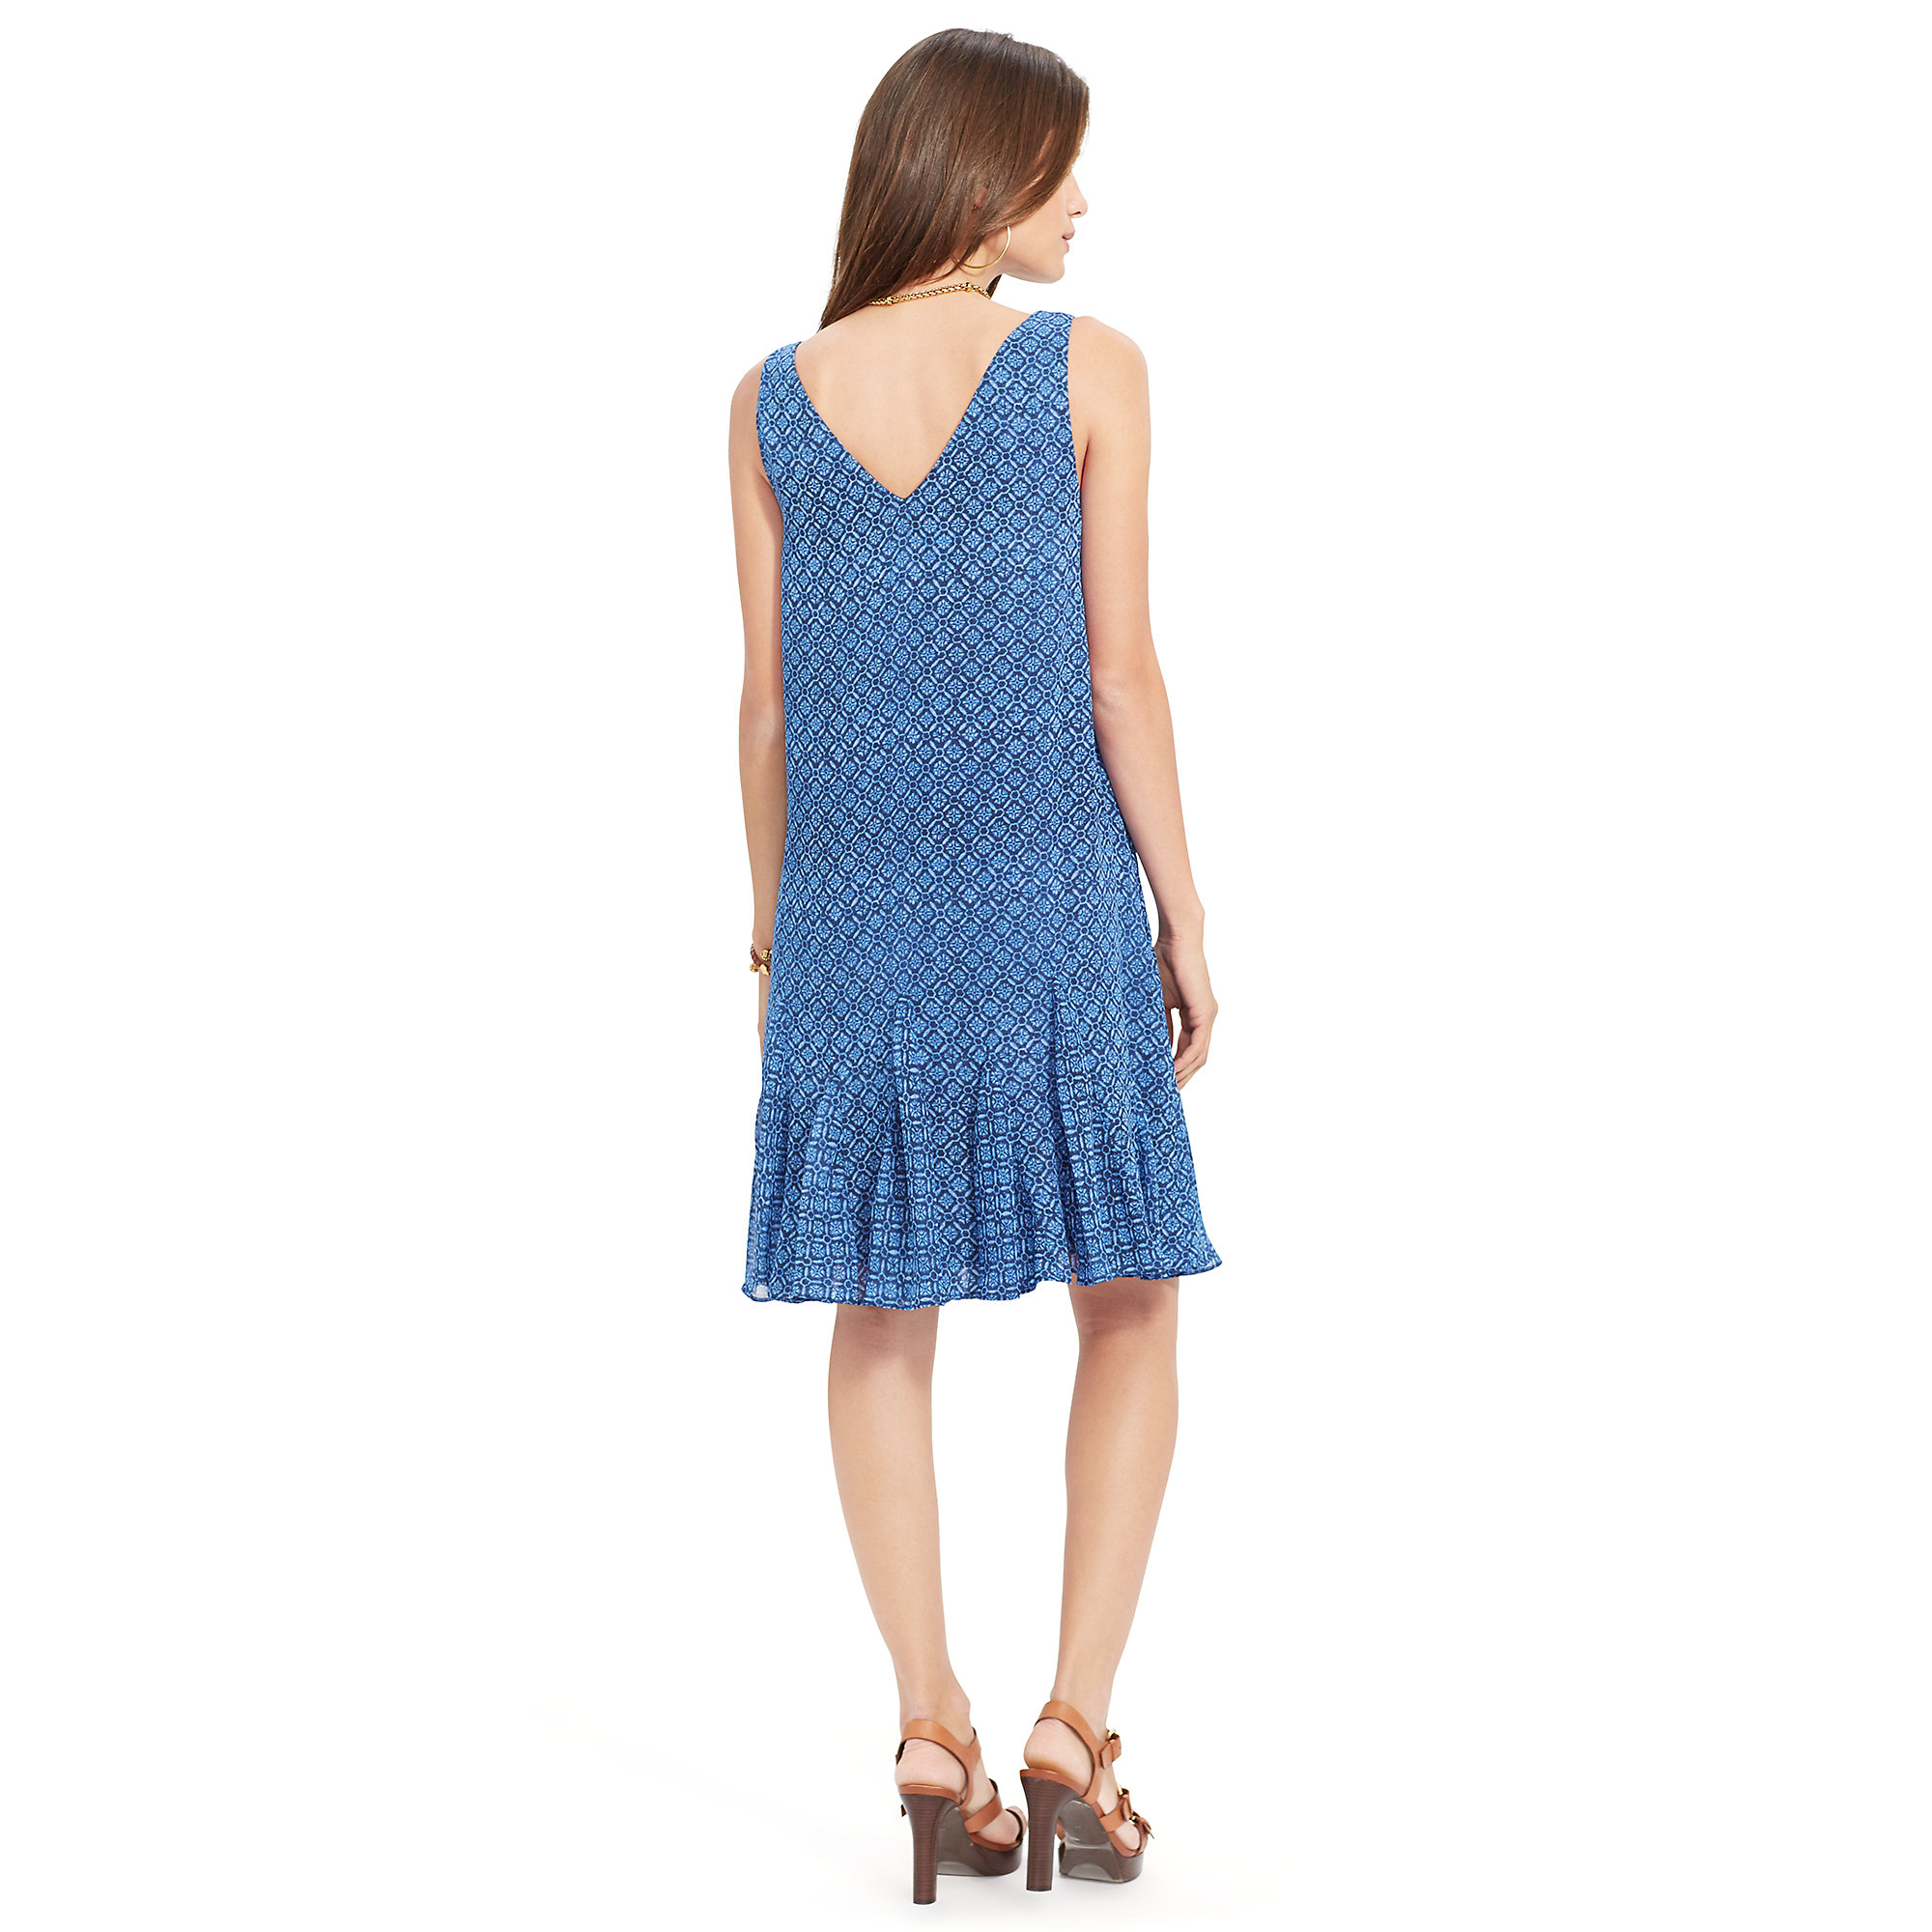 Wonderful 27 Beautiful Womens Polo Dress Ralph Lauren U2013 Playzoa.com